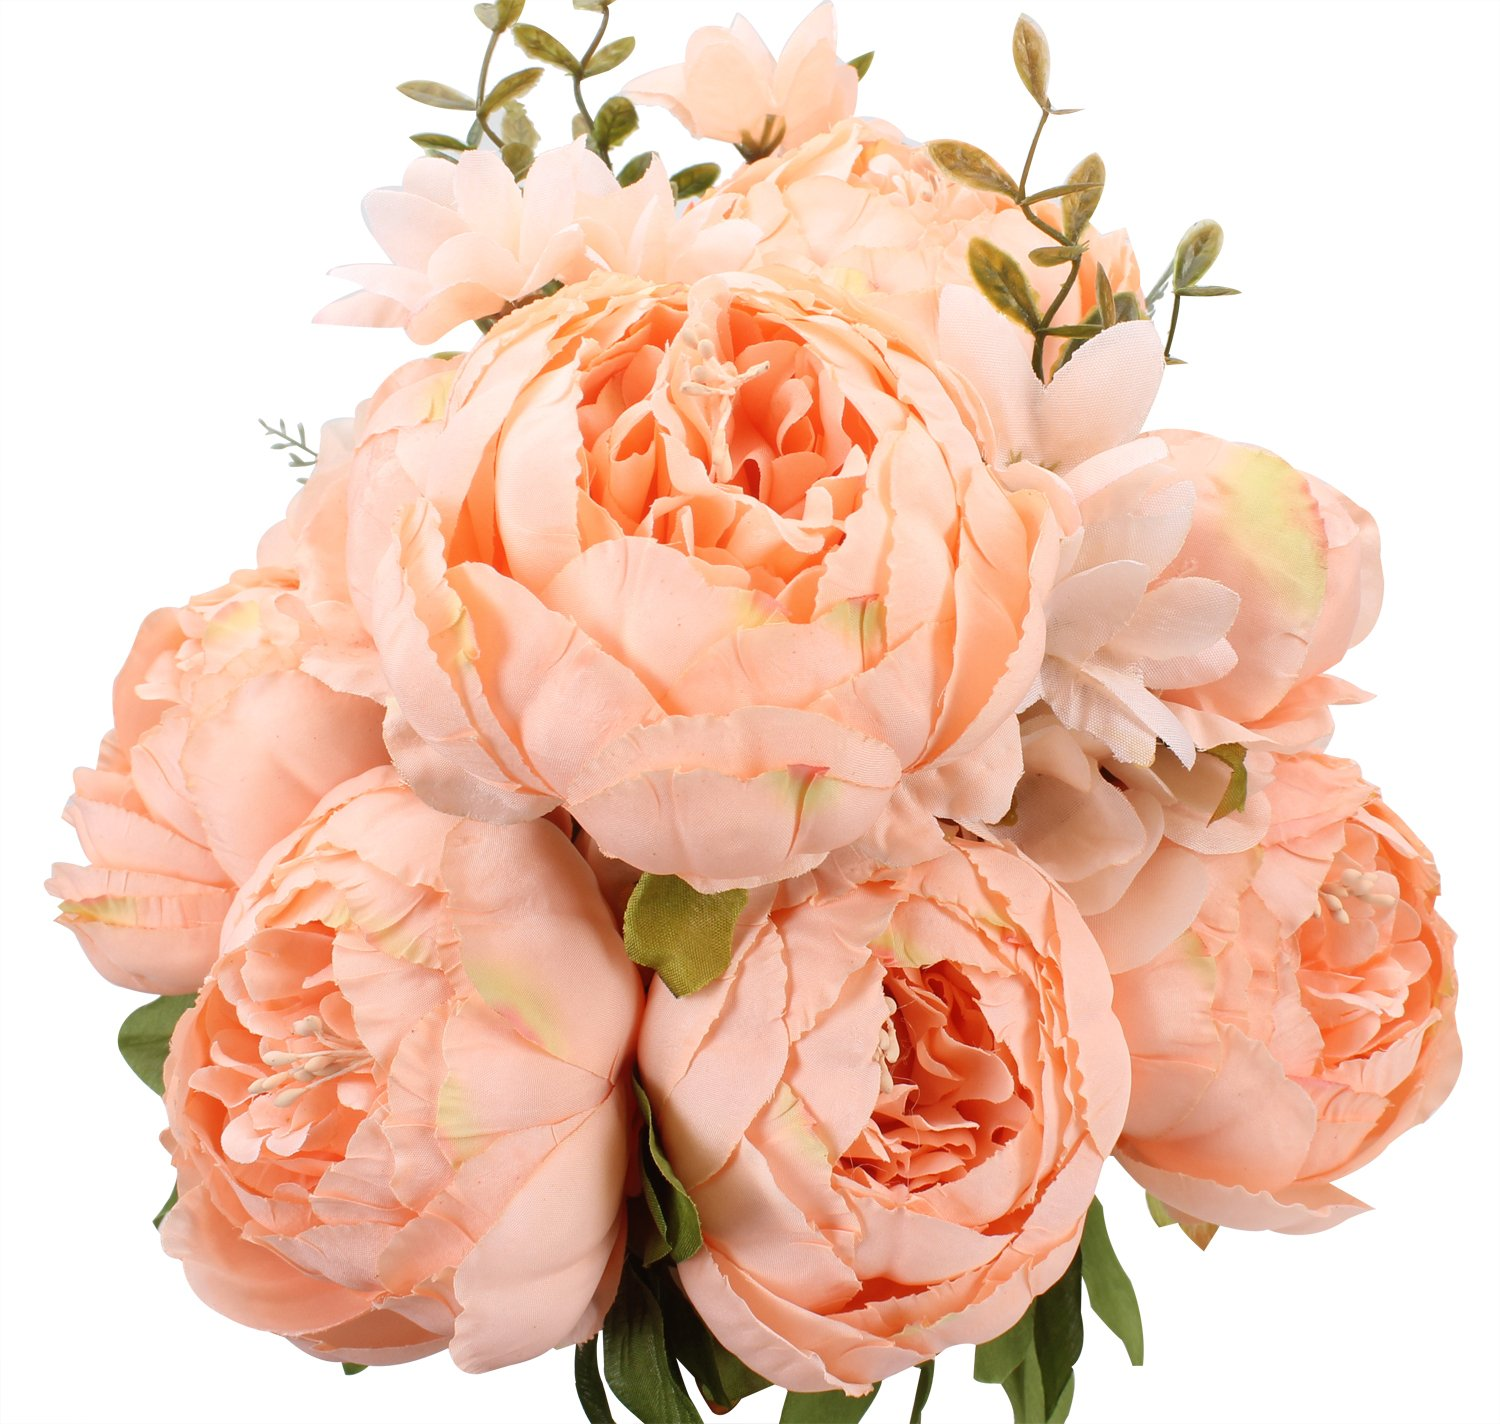 silk flower arrangements duovlo springs flowers artificial silk peony bouquets wedding home decoration,pack of 1 (spring orange-pink)